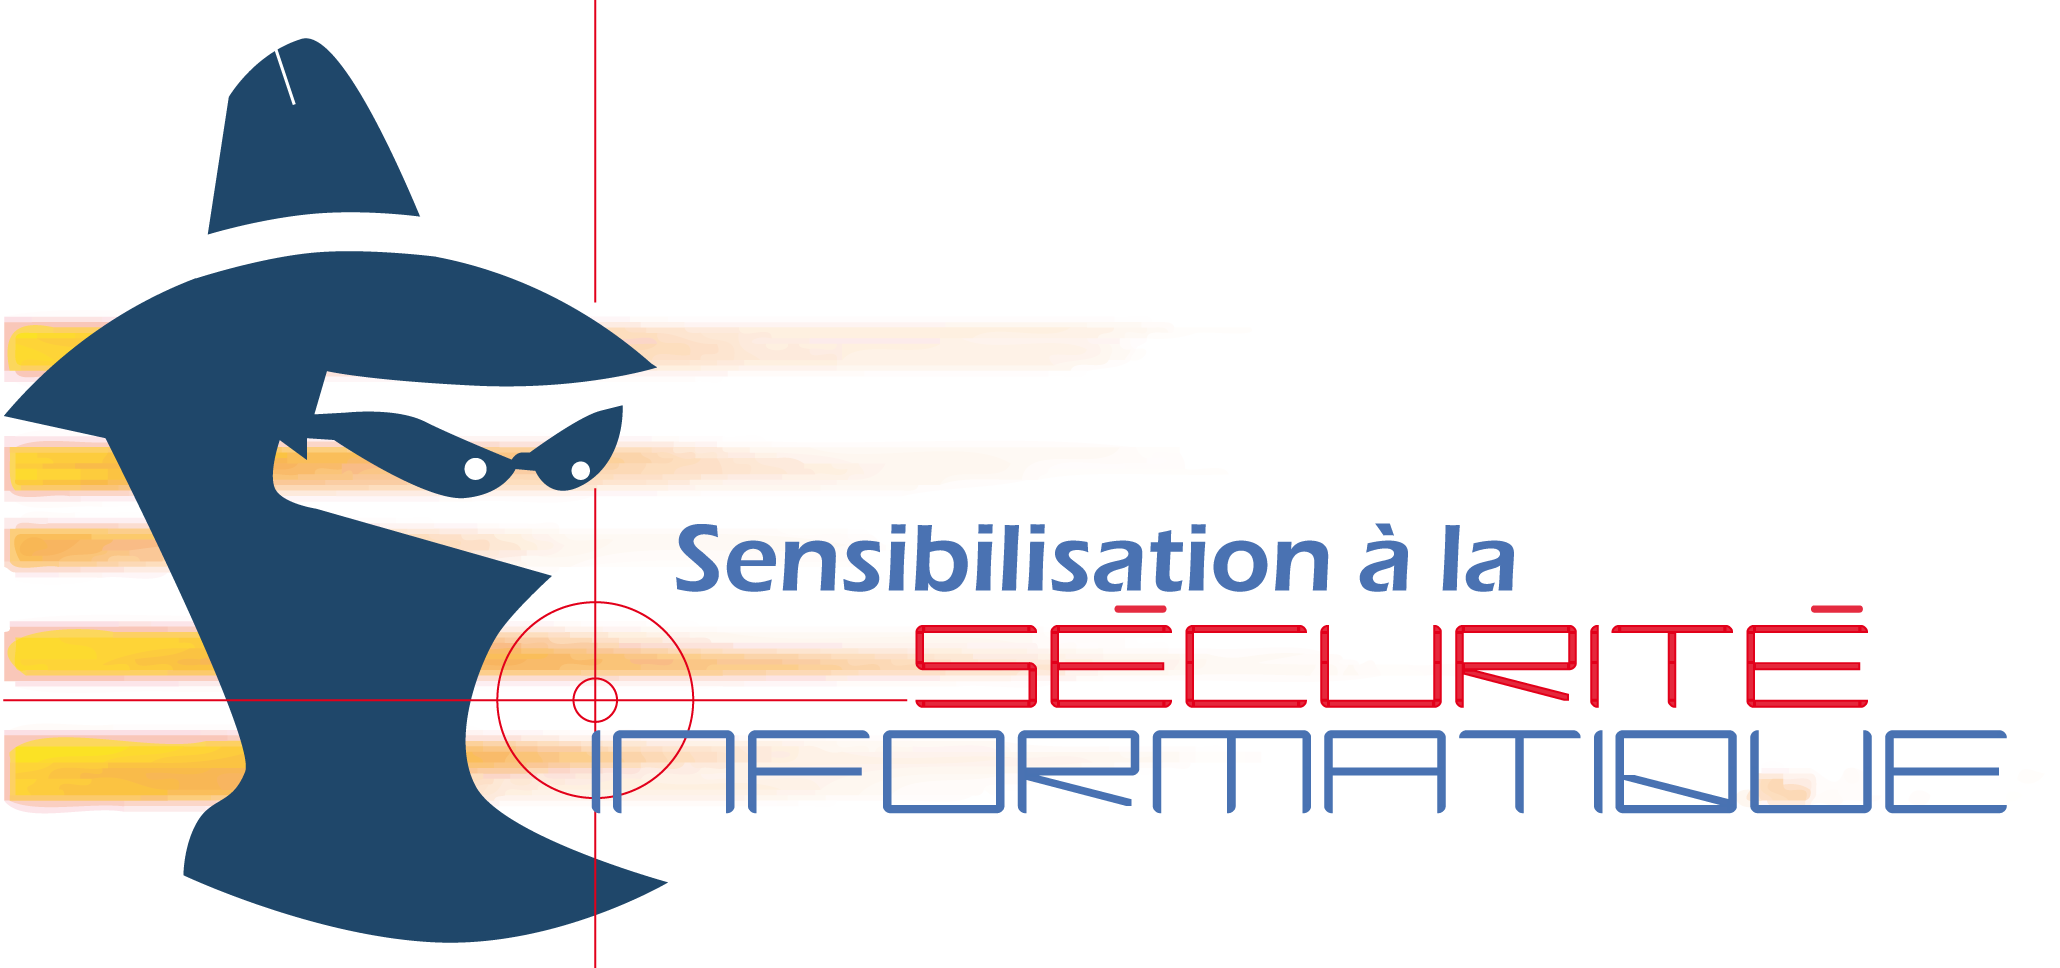 u00c9tudiants - sensibilisation  u00e0 la s u00e9curit u00e9 informatique